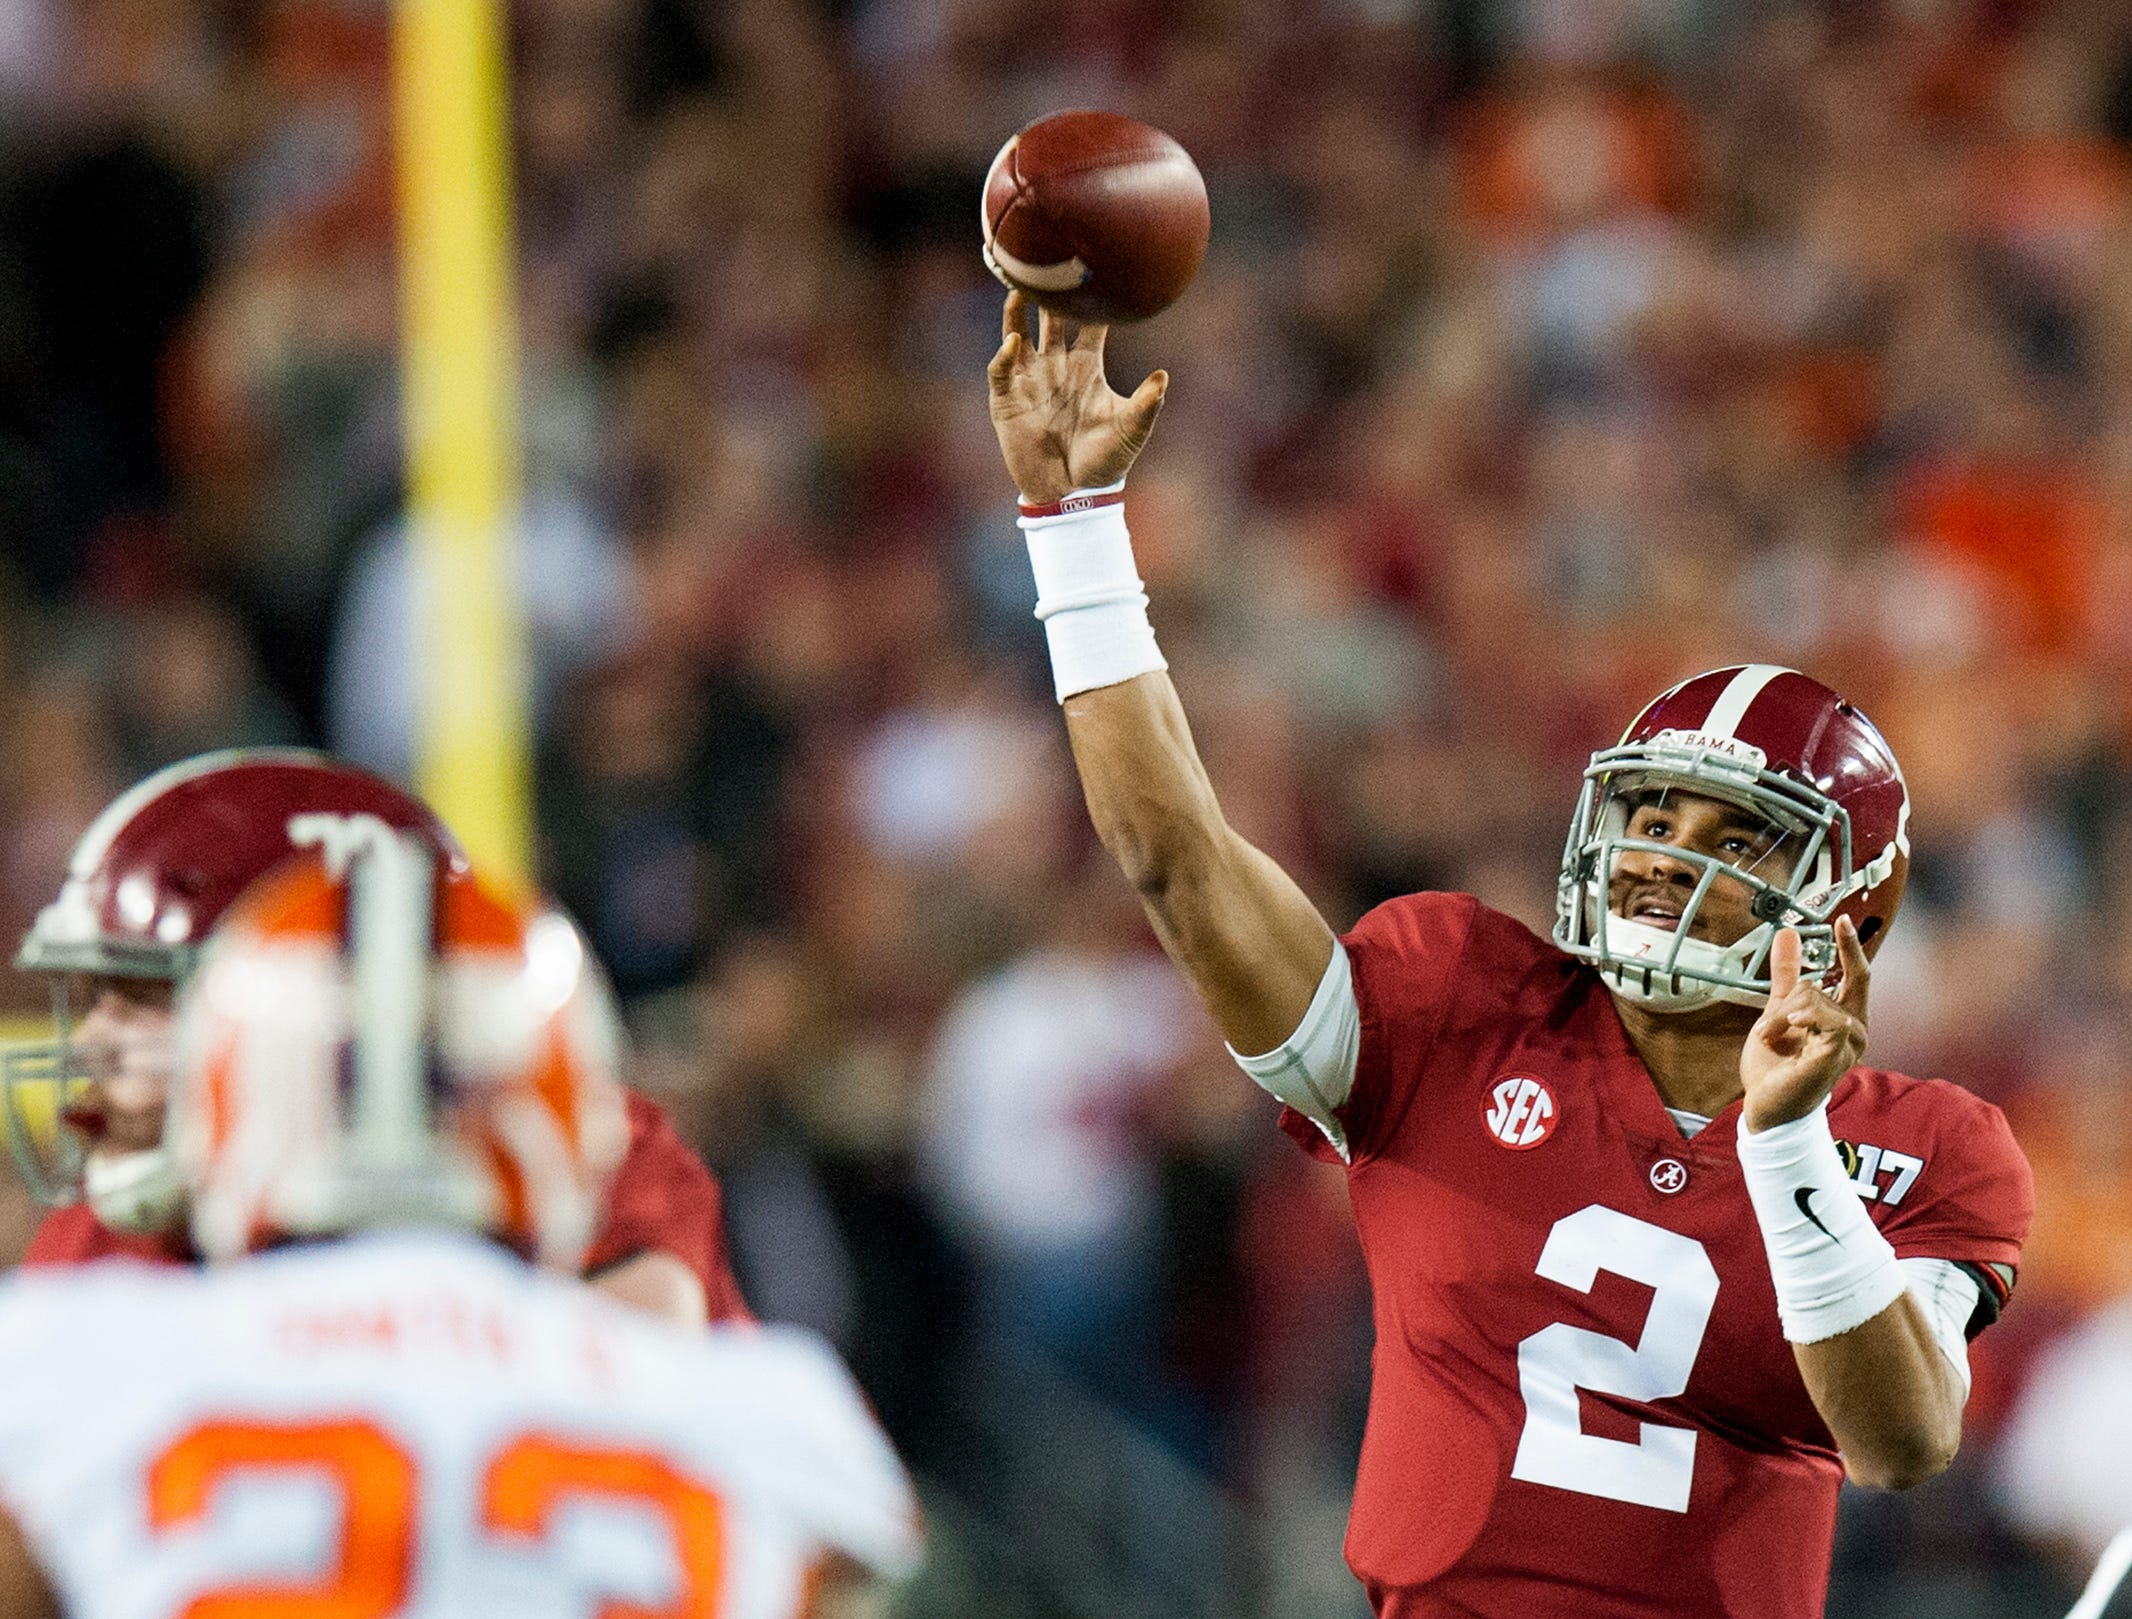 Alabama quarterback Jalen Hurts (2) throws against Clemson in first half action of the College Football Playoff National Championship Game at Raymond James Stadium in Tampa, Fla. on Monday January 9, 2017.